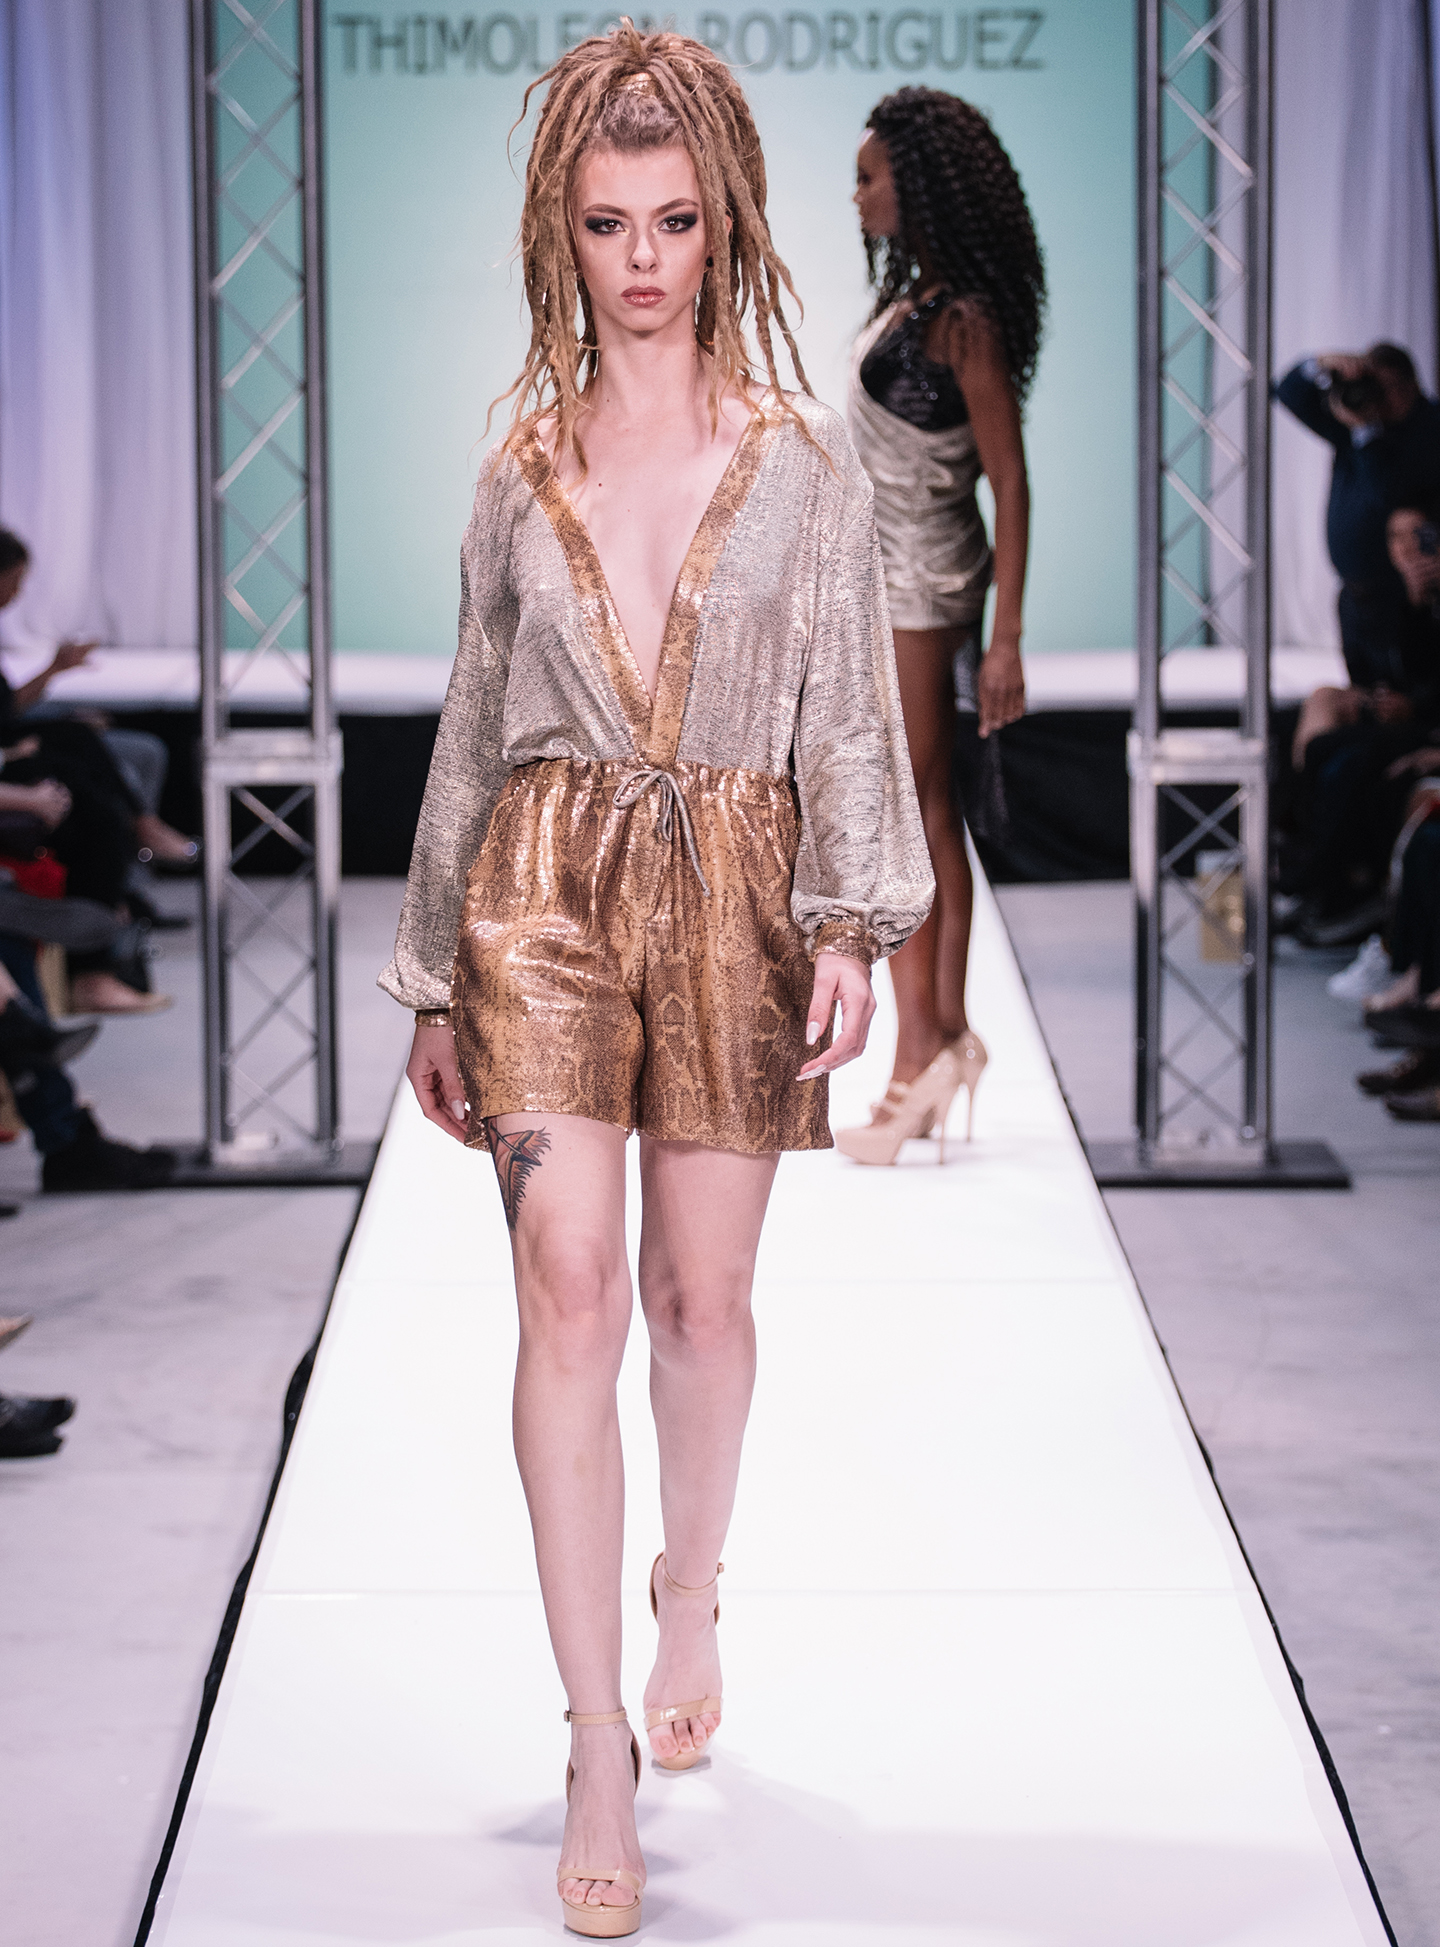 8c7cb4cbf057c This first fit was by Thimoleon Rodriguez, who stated that his inspiration  for his collection was New York. In turn, this specific piece was a nod  toward ...